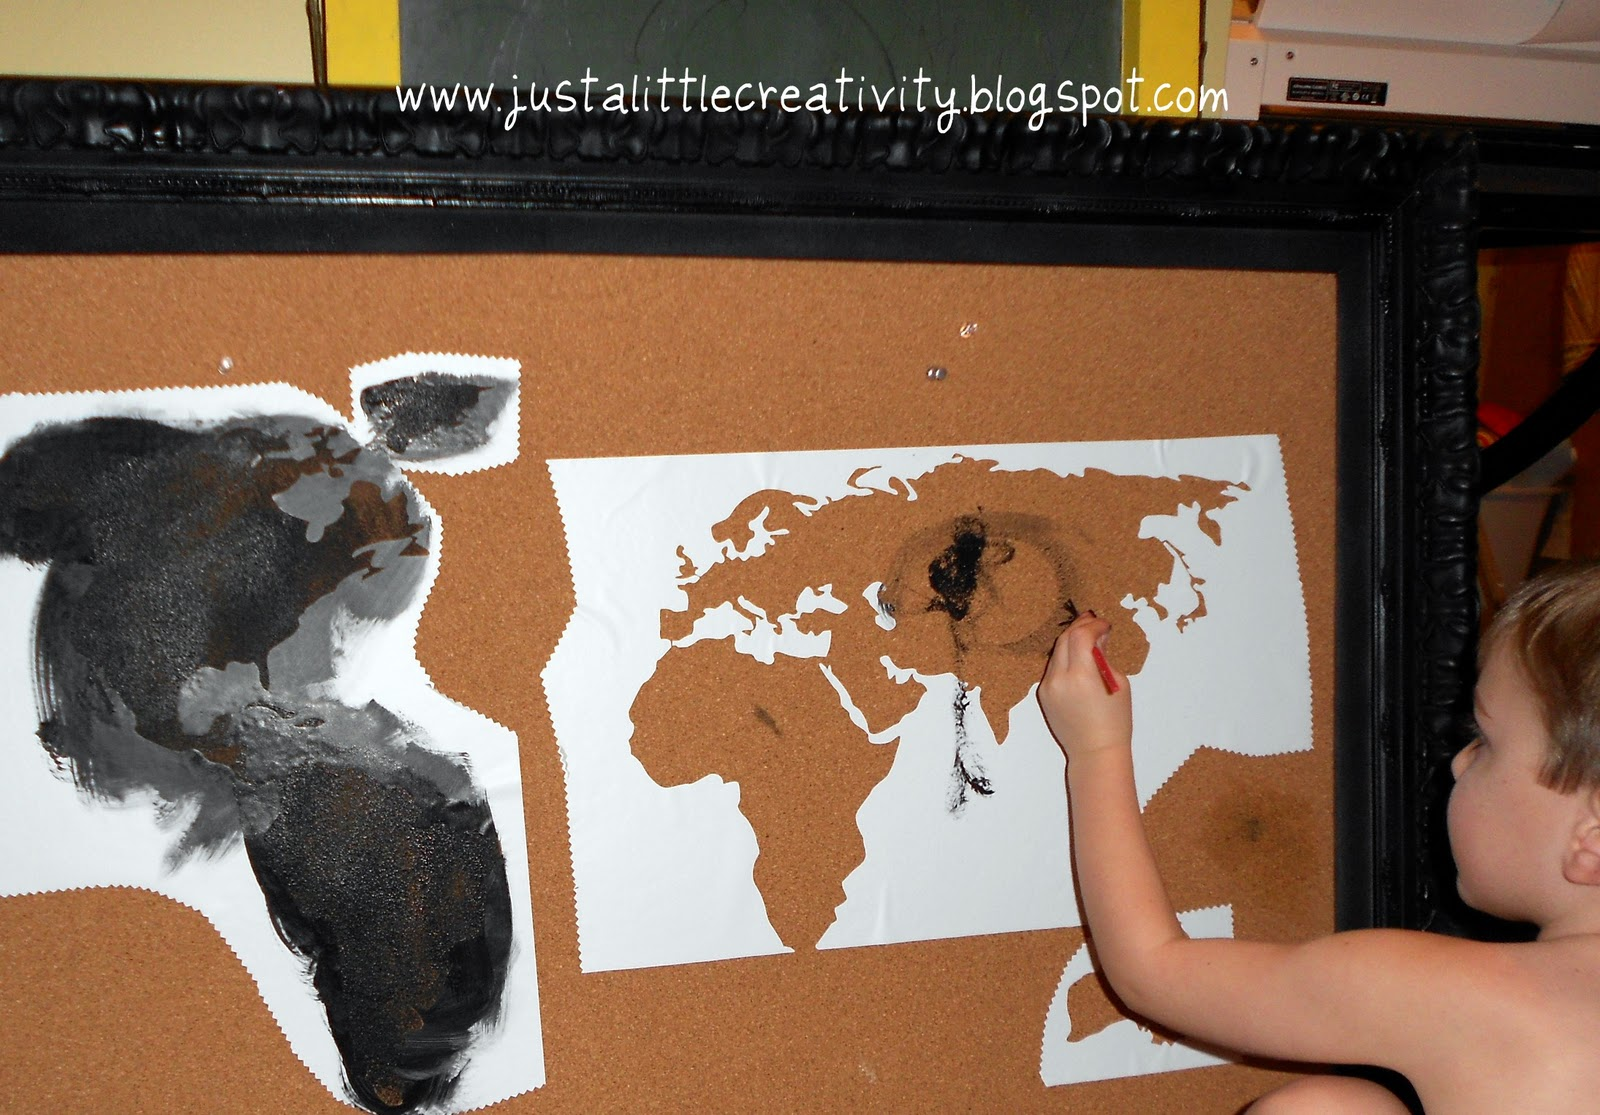 Travel map cork board ballard inspired knockoff just a little silhouette cameo i cut a map of the world out of vinyl using the vinyl as a stencil i and my three year old helper painted in the countries black gumiabroncs Images